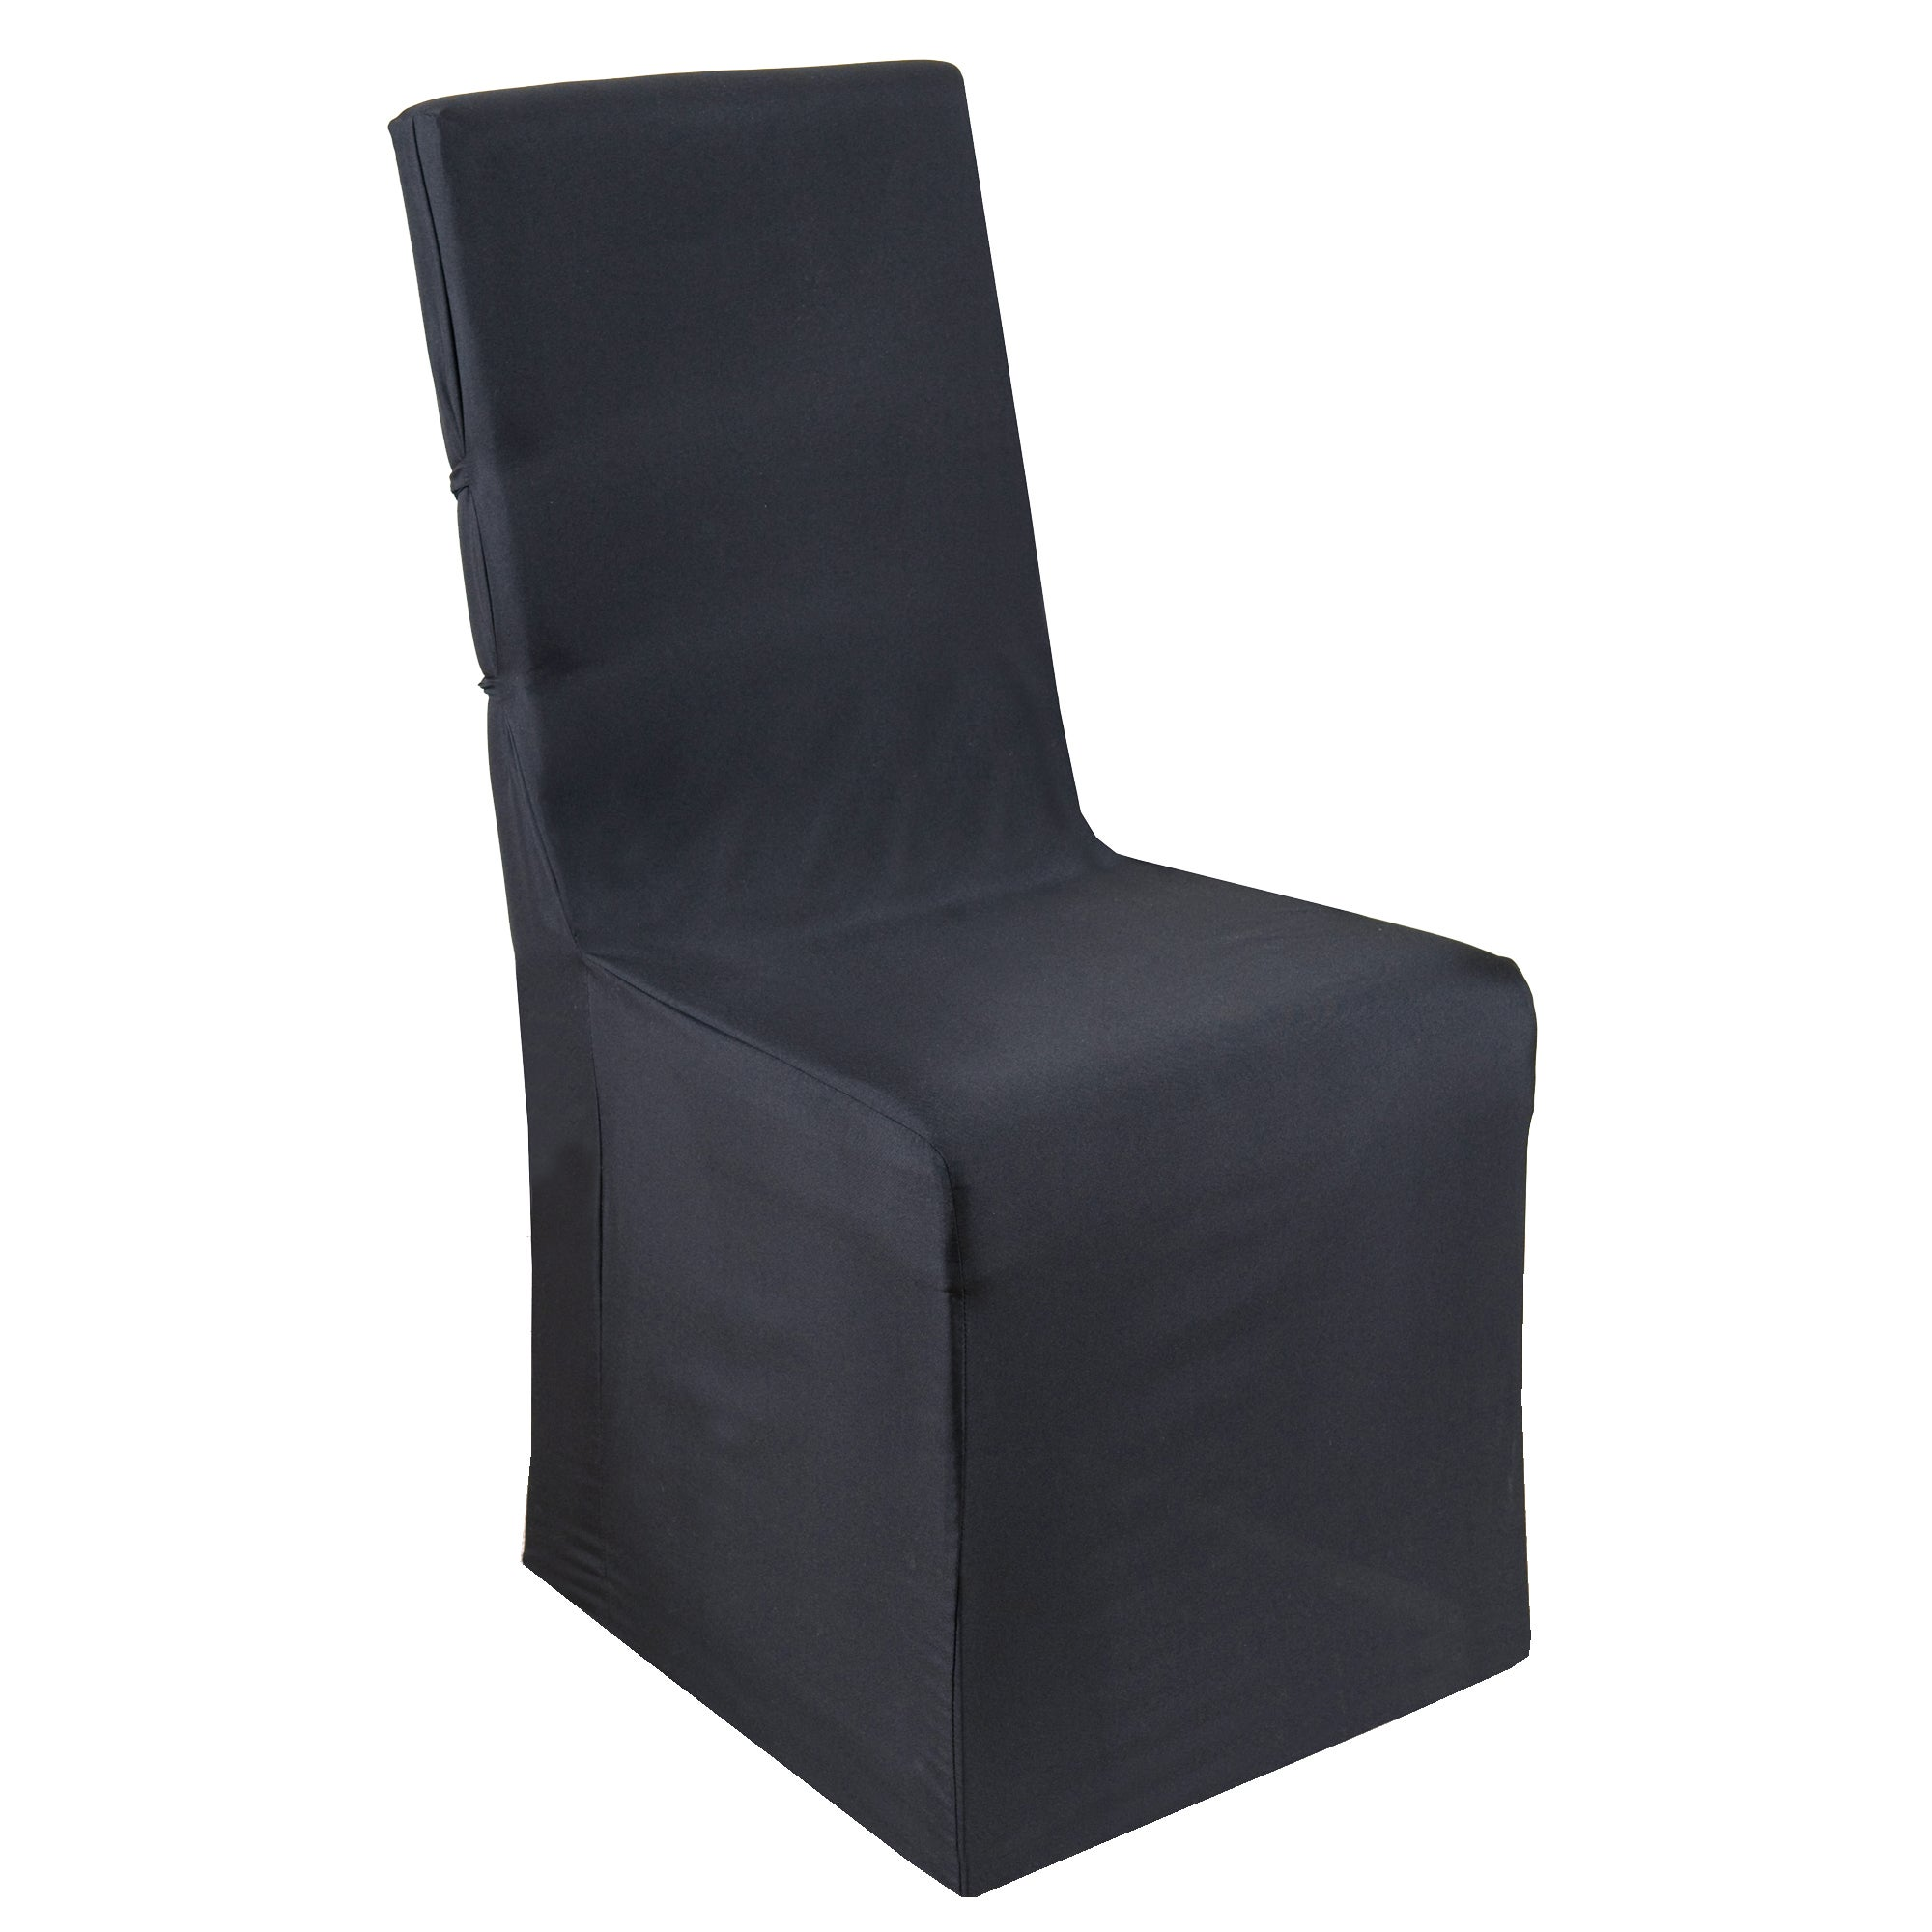 Pack of 2 Black Chair Covers